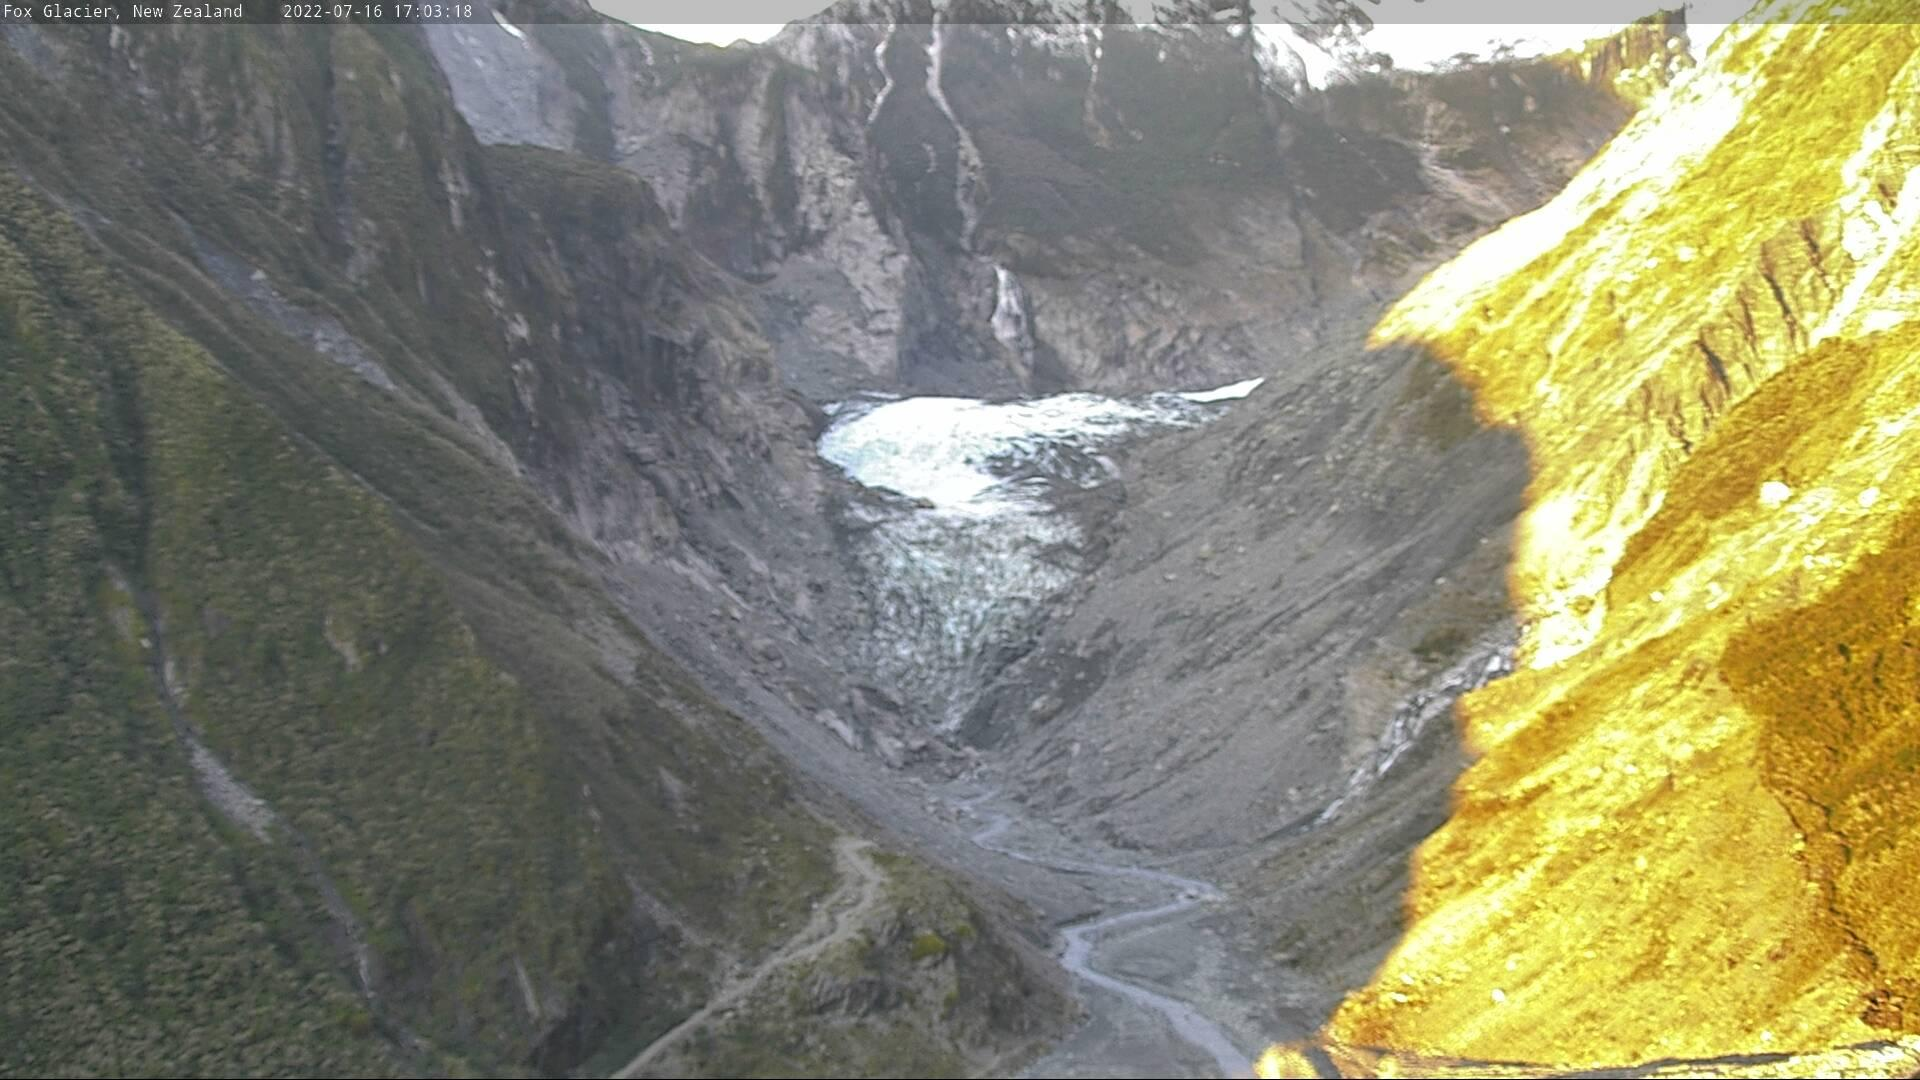 Webcam Fox Glacier › East: Valley and Snowfields